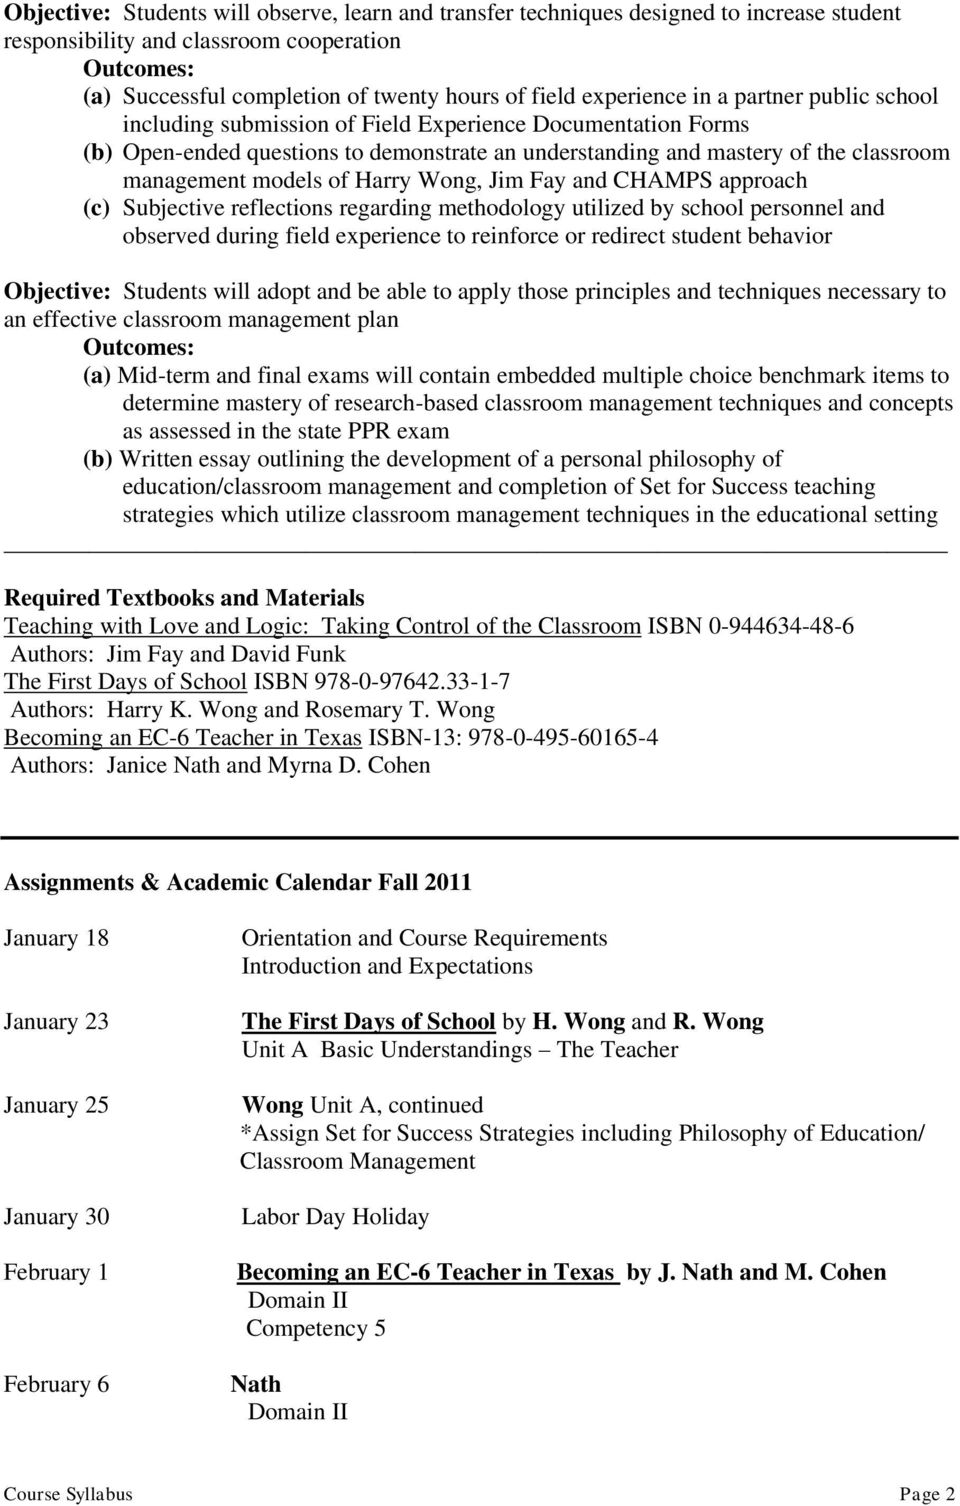 models of Harry Wong, Jim Fay and CHAMPS approach (c) Subjective reflections regarding methodology utilized by school personnel and observed during field experience to reinforce or redirect student